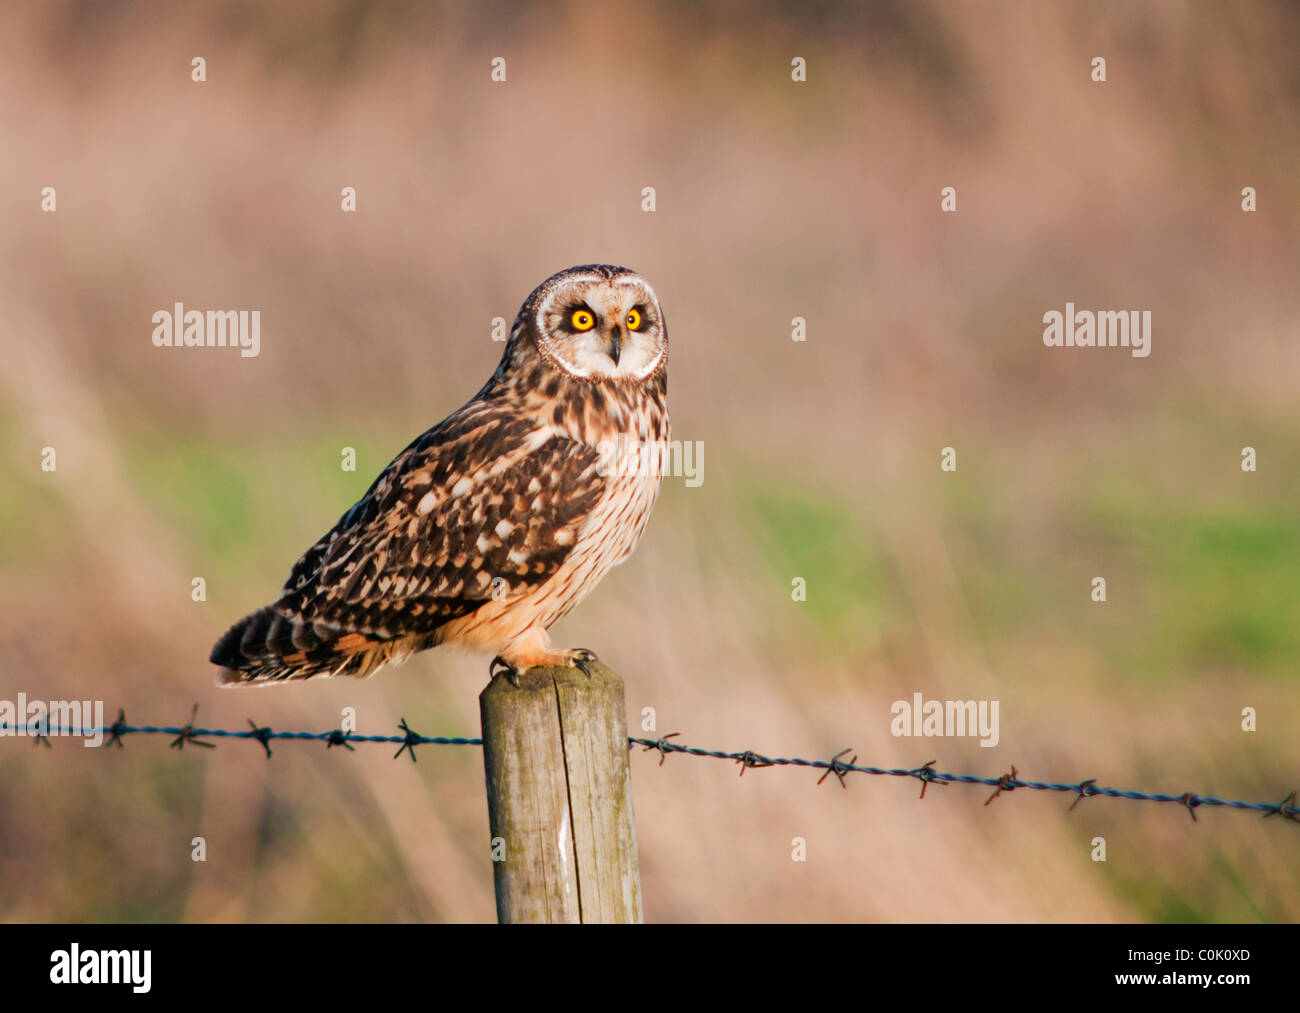 Wild Short Eared Owl perched on wooden fence post in North Lincolnshire - Stock Image